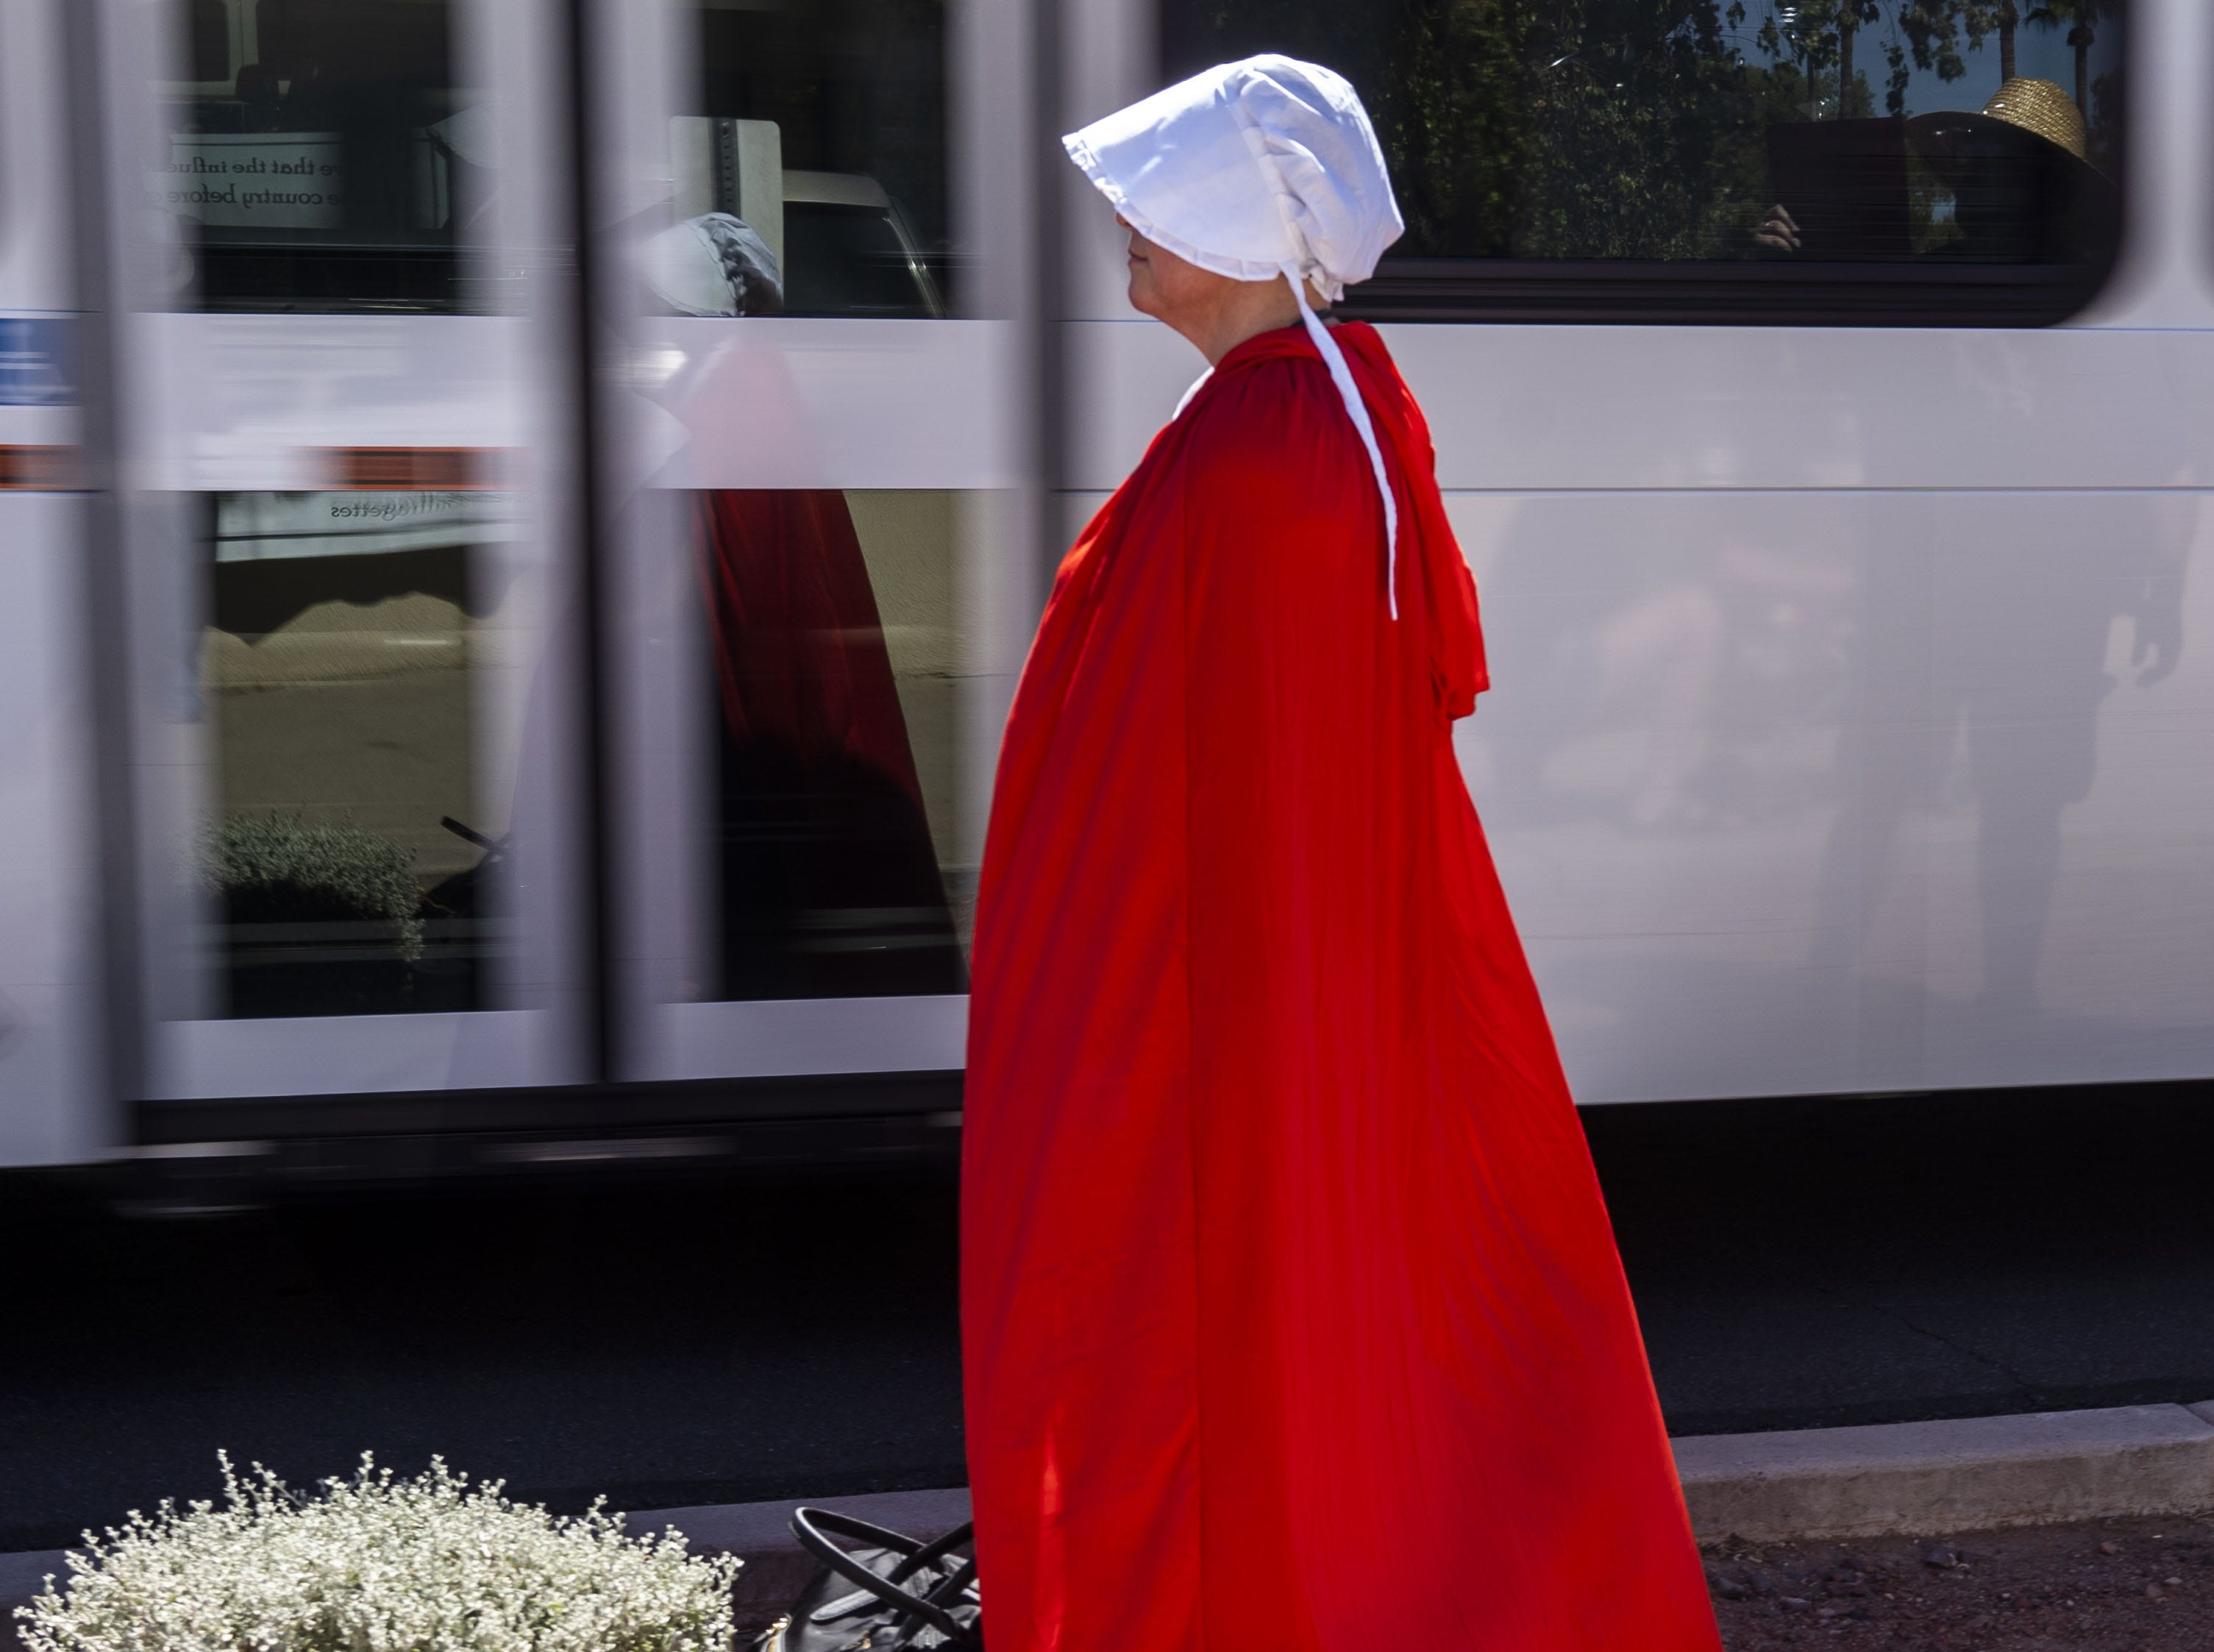 """A protester dressed as a handmaid from """"A Handmaid's Tale"""" marches Sept. 28, 2018, outside Jeff Flake's office in Phoenix. Flake said he wouldn't support a floor vote for Judge Brett Kavanaugh U.S. Supreme Court confirmation without allowing an investigation into sexual harassment accusations against Kavanaugh."""